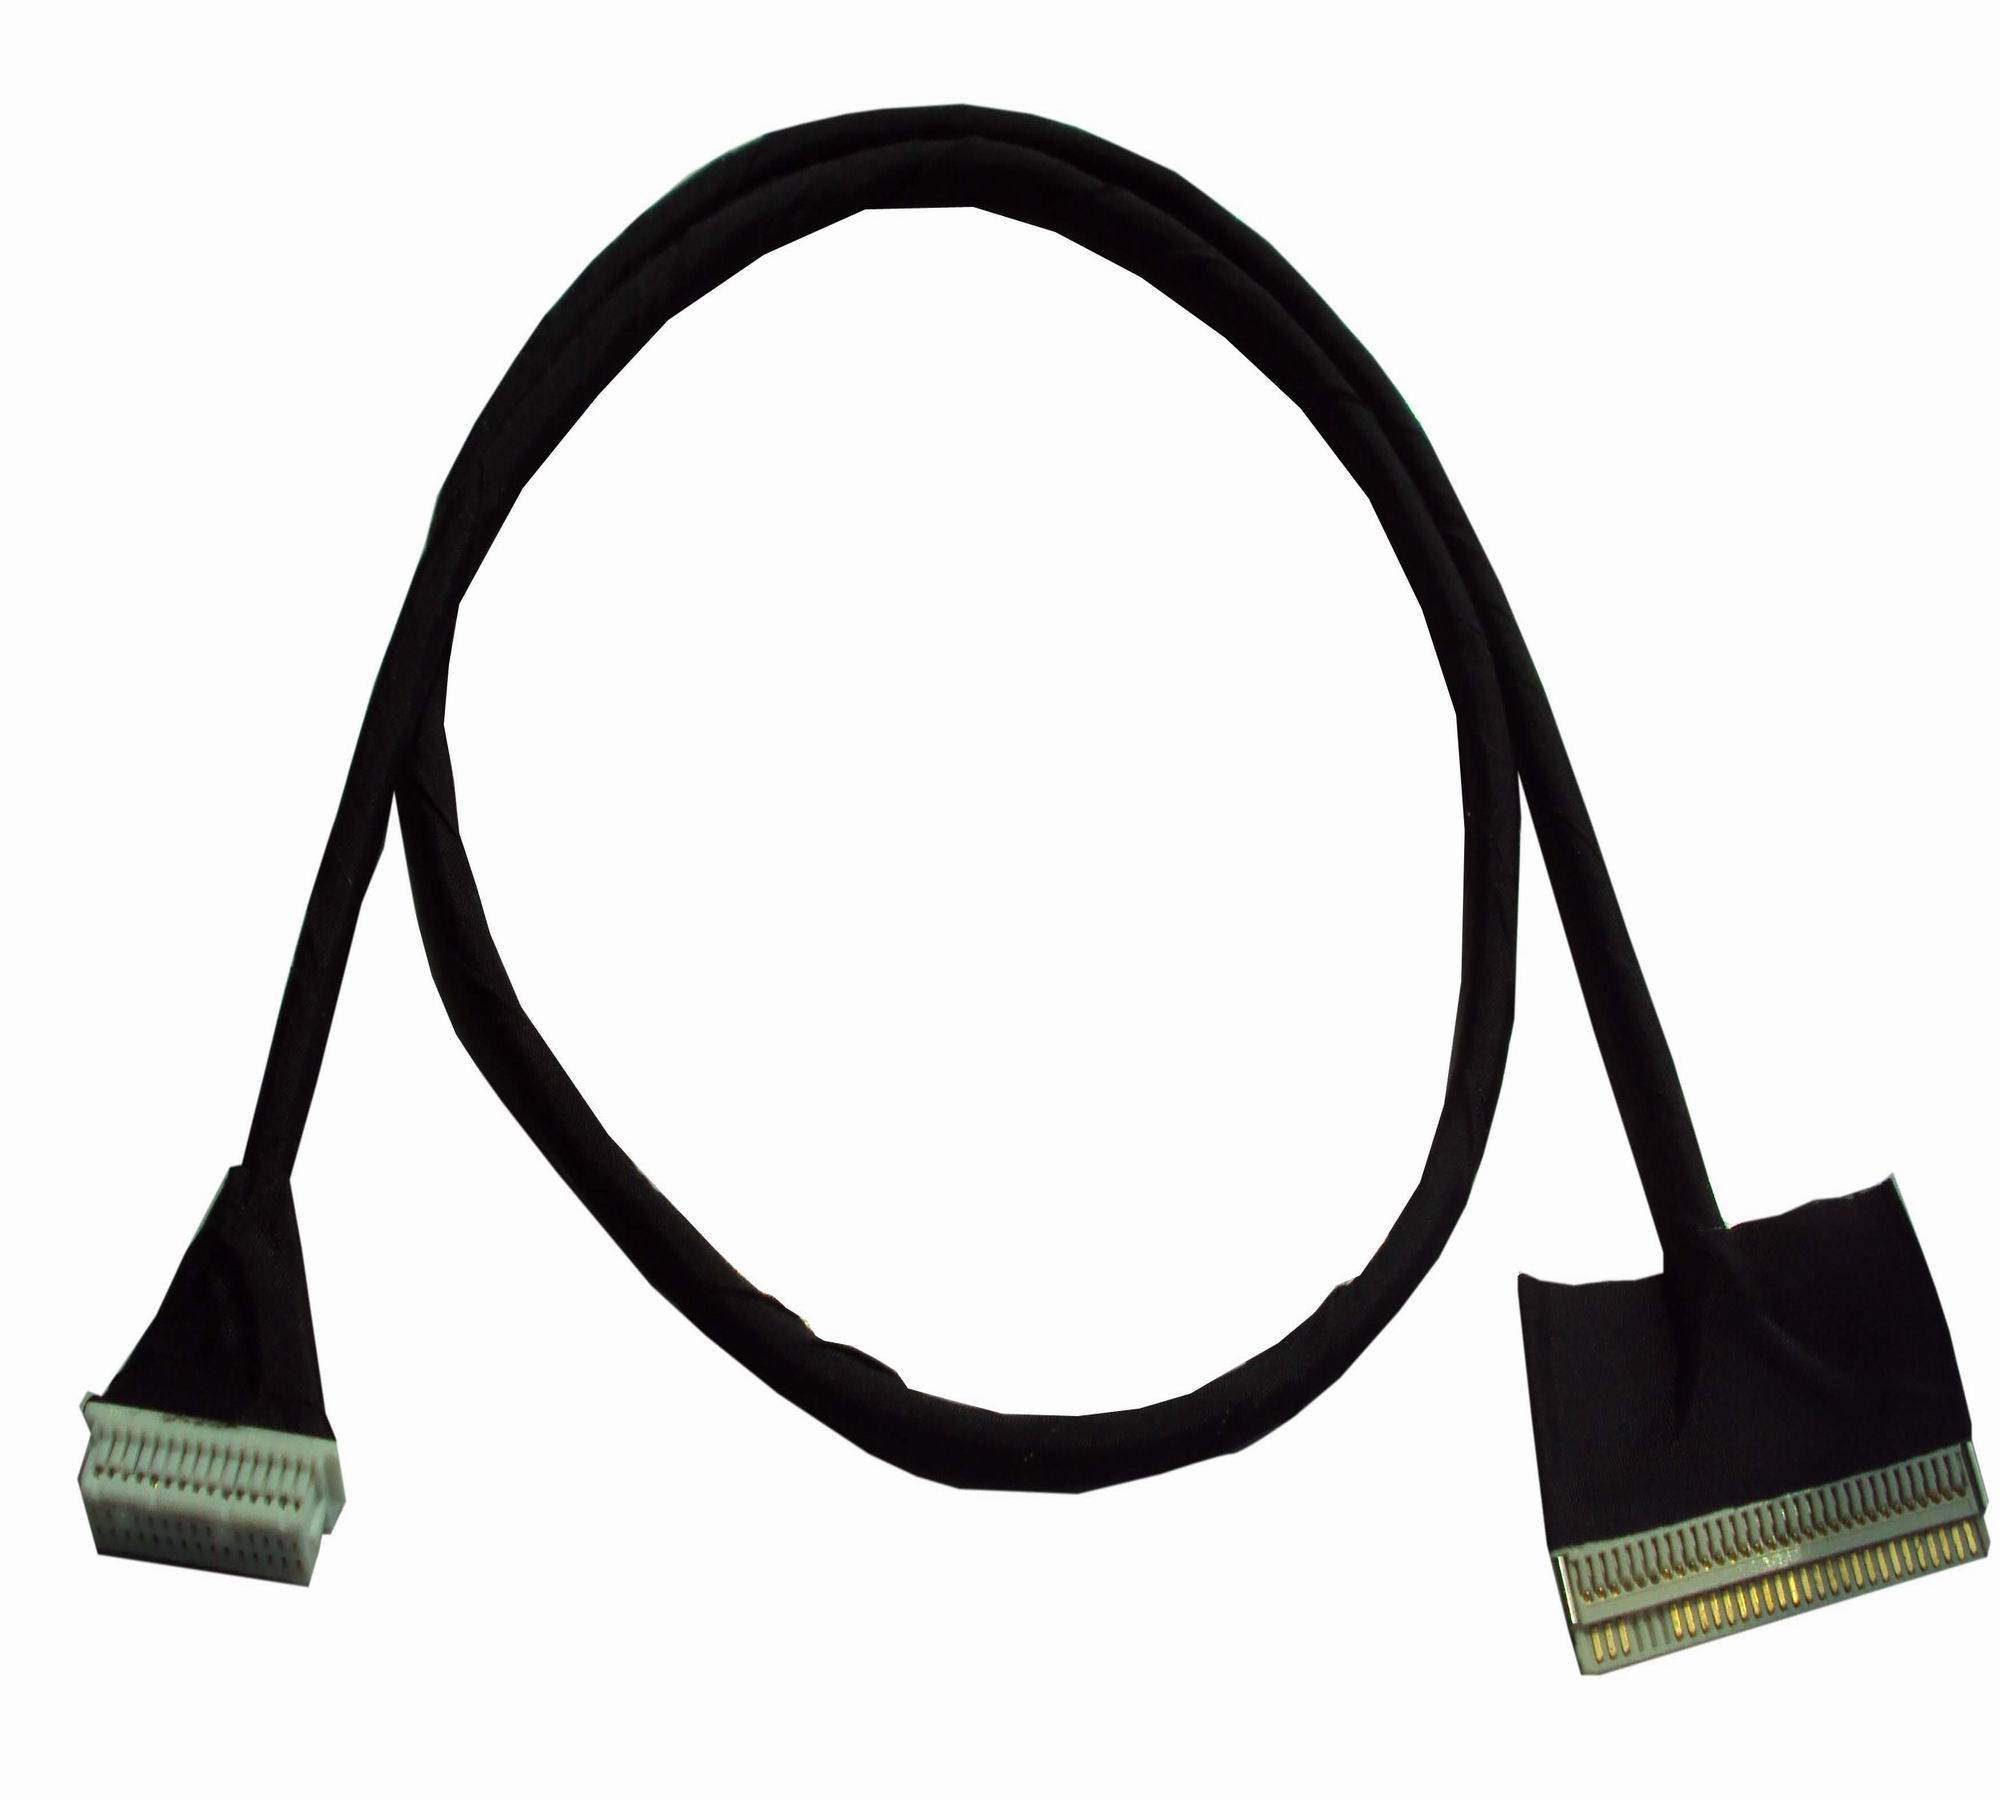 LVDS cable for touchscreen entertainment system